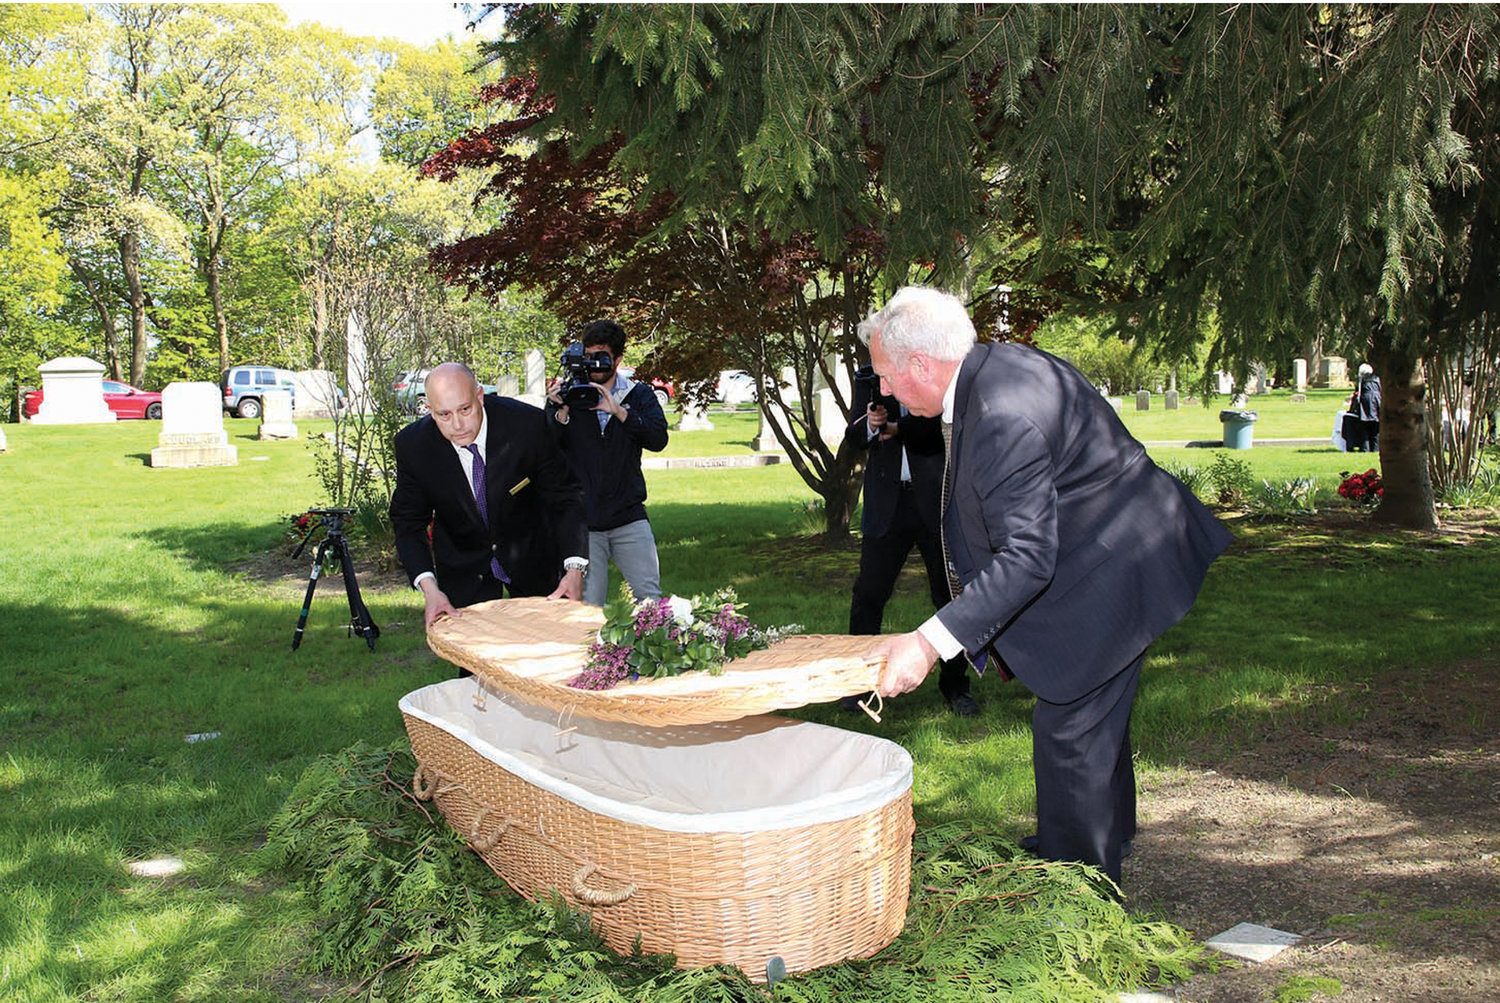 Swan Point staff demonstrates the closing of a wicker casket, which is made of wholly biodegradable materials